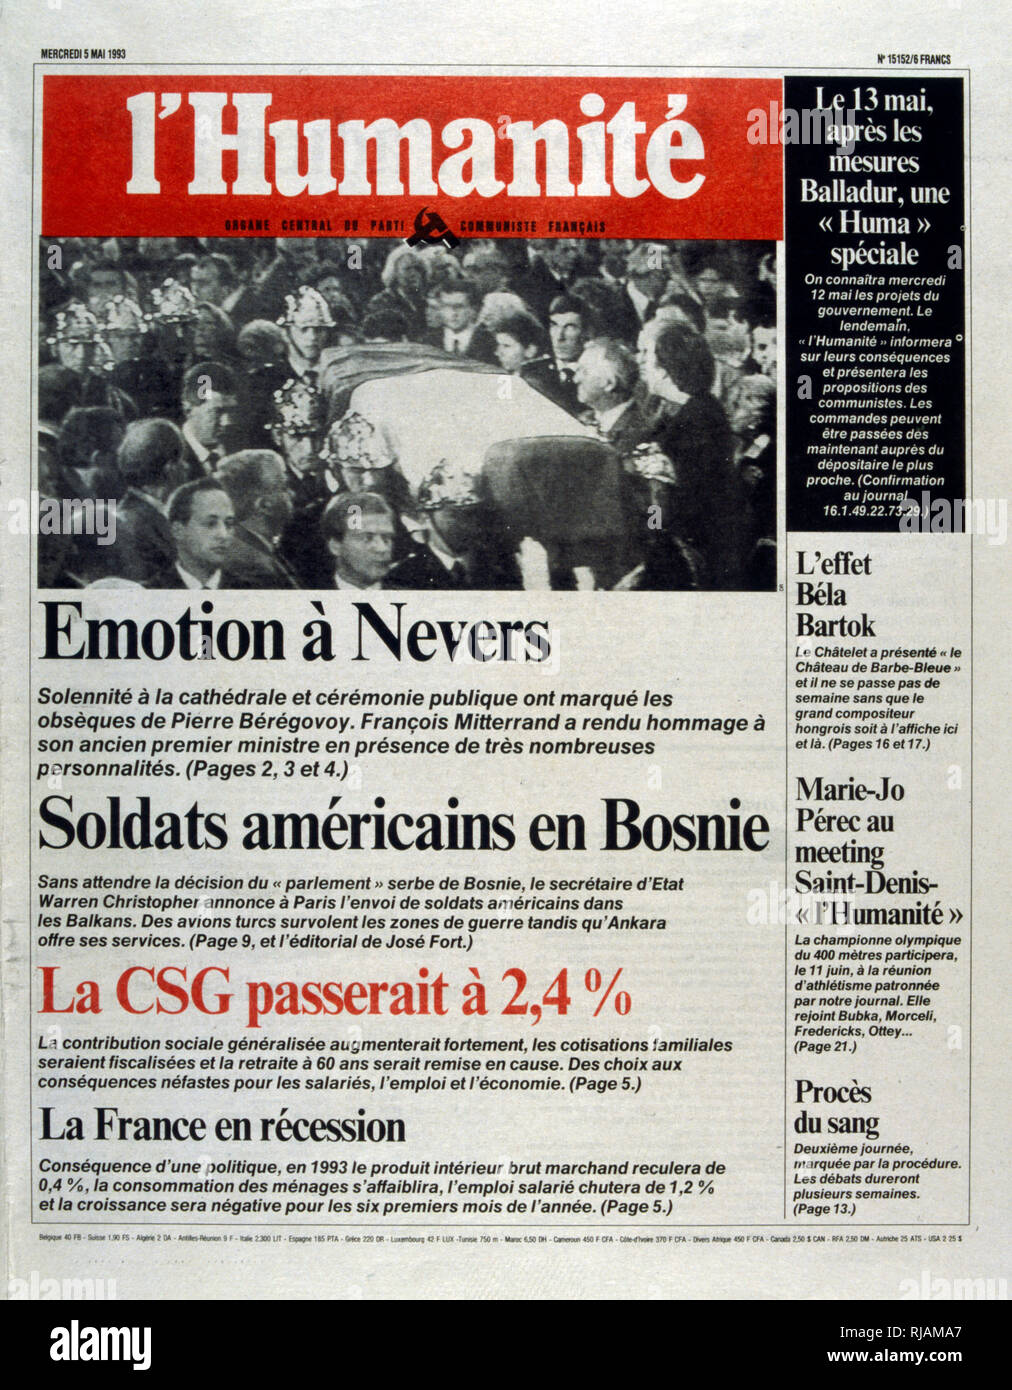 Front page of the French newspaper 'L'Humanite' after the funeral of Pierre Beregovoy, May 1993. Pierre Eugene Beregovoy (1925 - 1 May 1993) was a French politician who served as Prime Minister of France under President Francois Mitterrand from 2 April 1992 to 29 March 1993. He committed suicide. - Stock Image